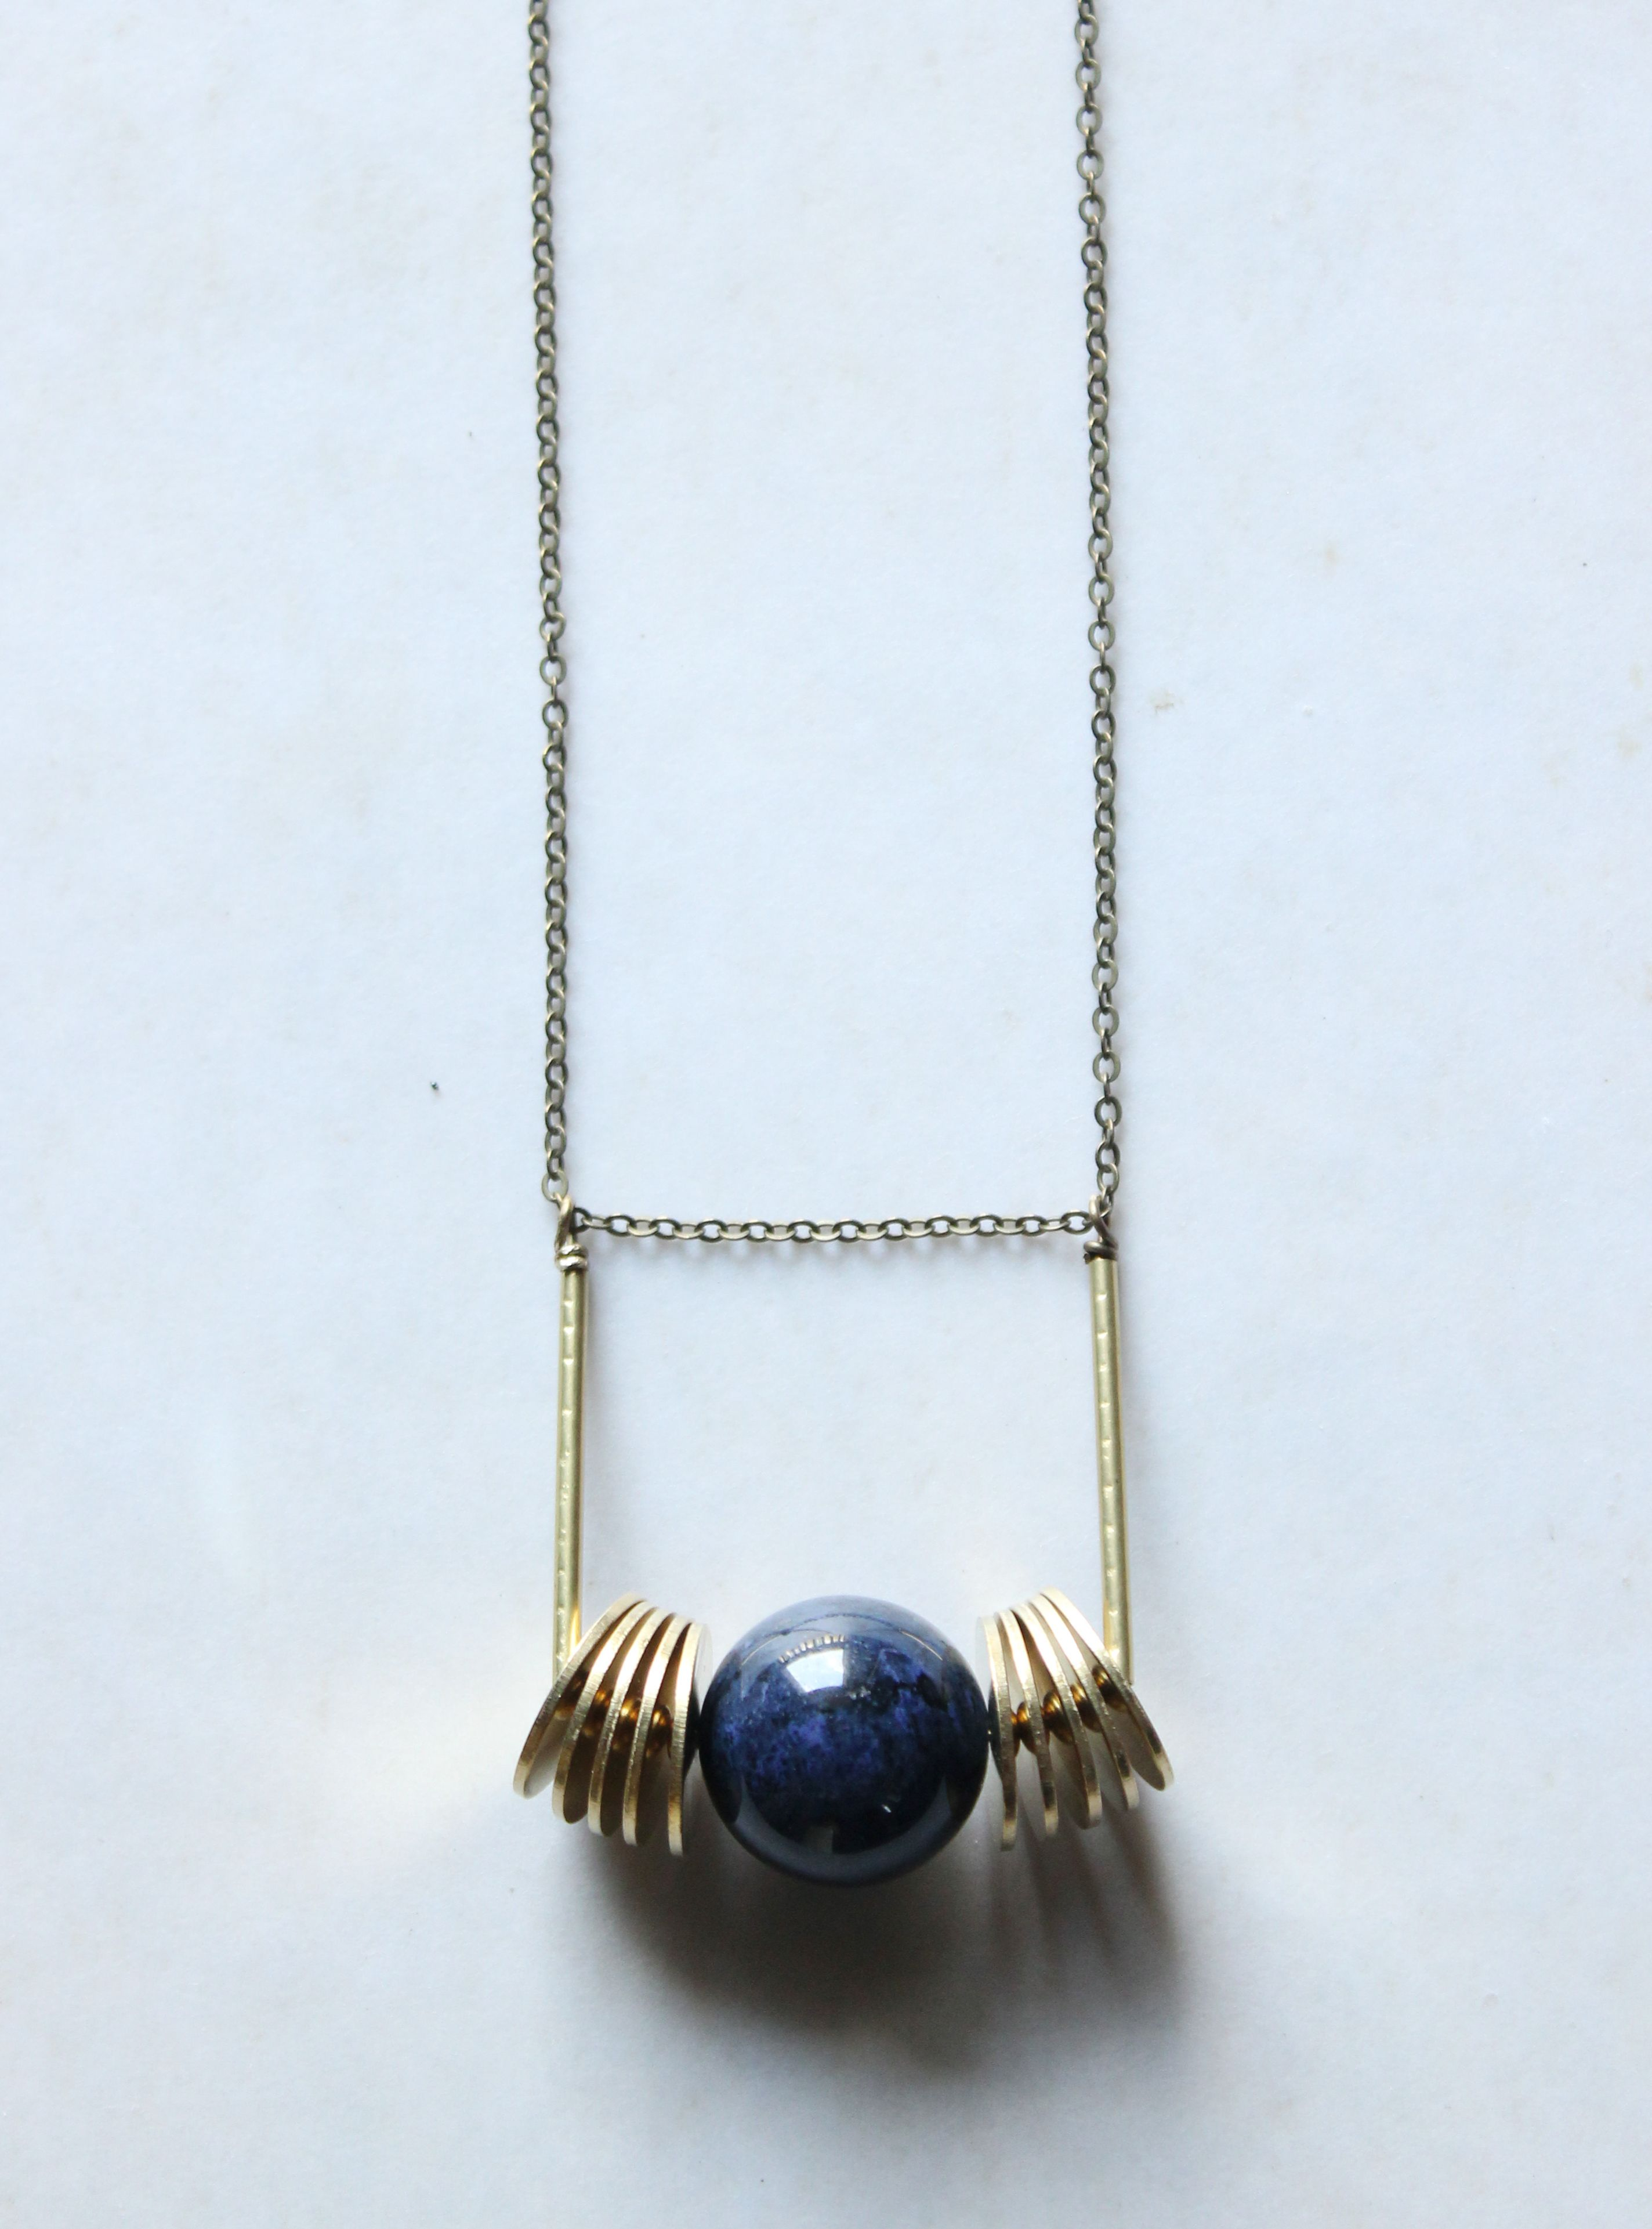 dumortierite jewelry blue orb necklace brass Geometric pendant